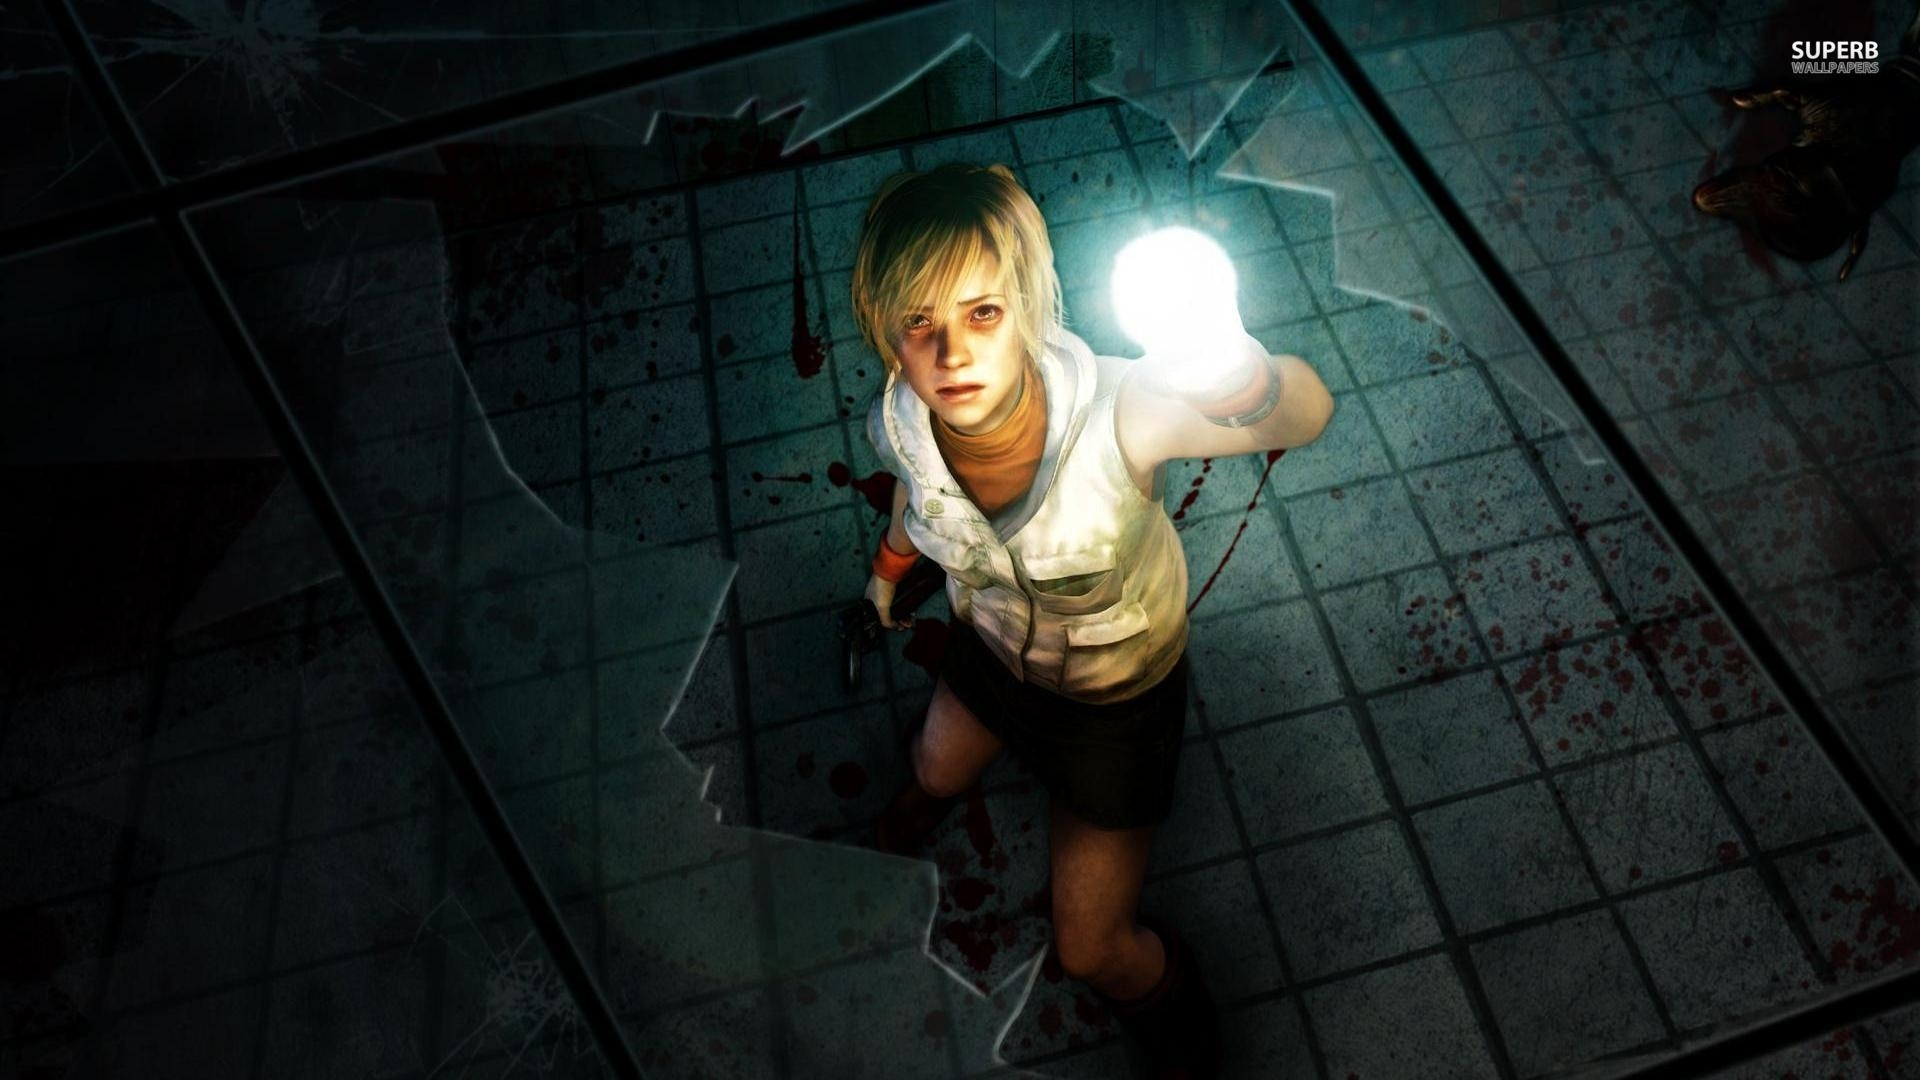 10 Best Silent Hill 3 Wallpaper FULL HD 1920×1080 For PC Background